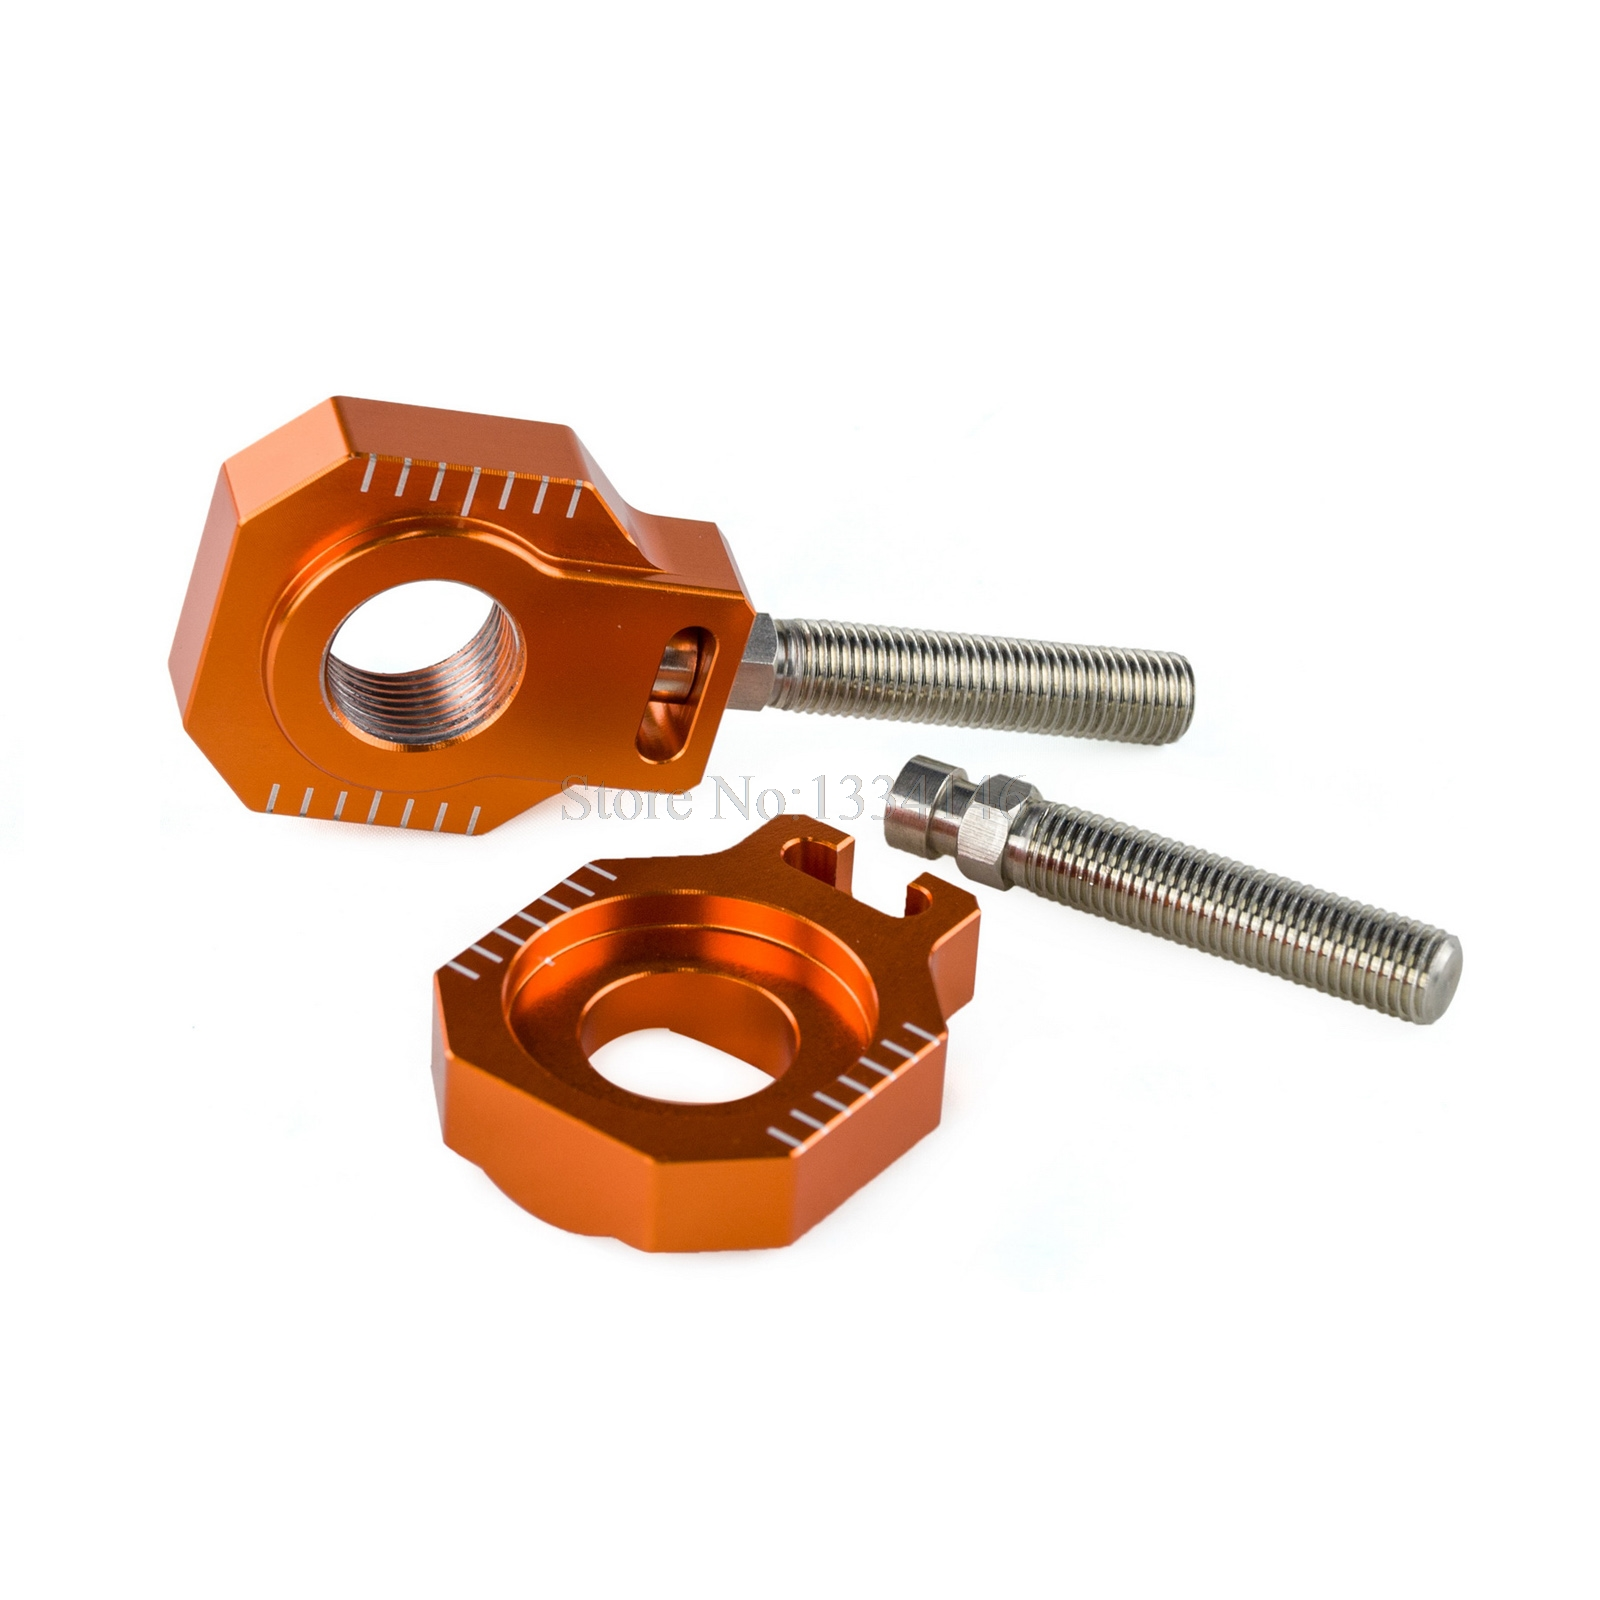 NICECNC Rear Axle Blocks Chain Adjuster For KTM 125 250 300 350 450 525 530 EXC EXCF XCW XCFW 2017 SX SXF XC XCF SX-F EXC-F XC-F carb carburetor 36mm pwk fit ktm 2008 2015 250 300 xc xcw sx 2 strokes keihin